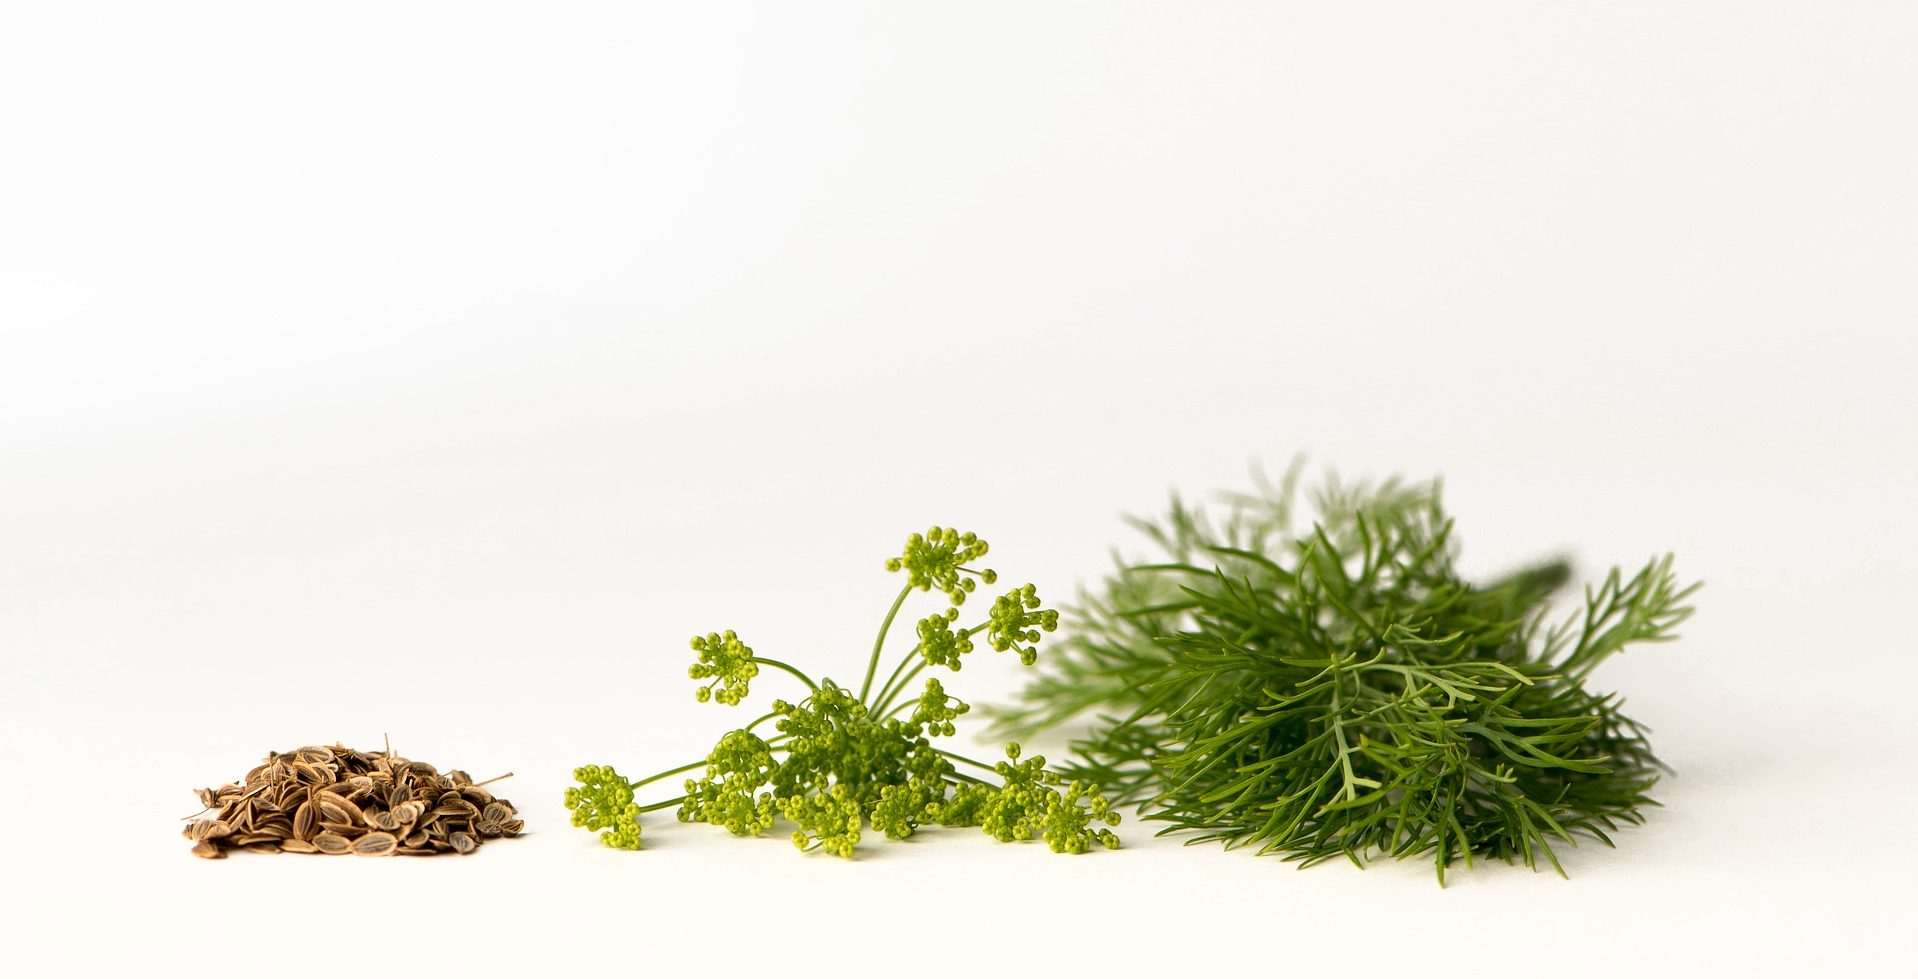 dill in various forms - seeds, blossom, herb